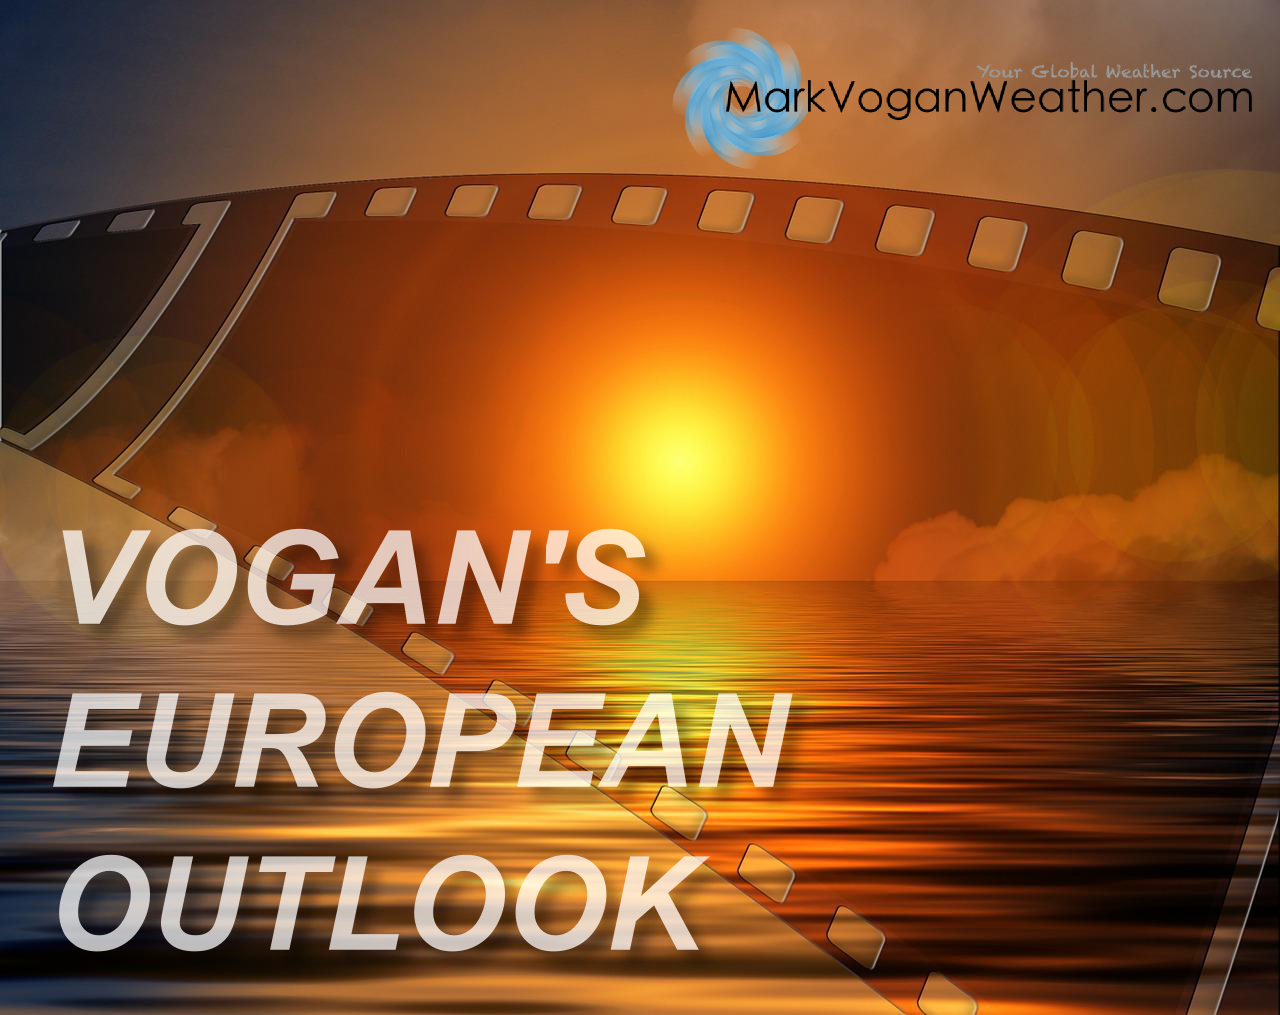 FRI 11 JUL: VOGAN'S EUROPEAN OUTLOOK